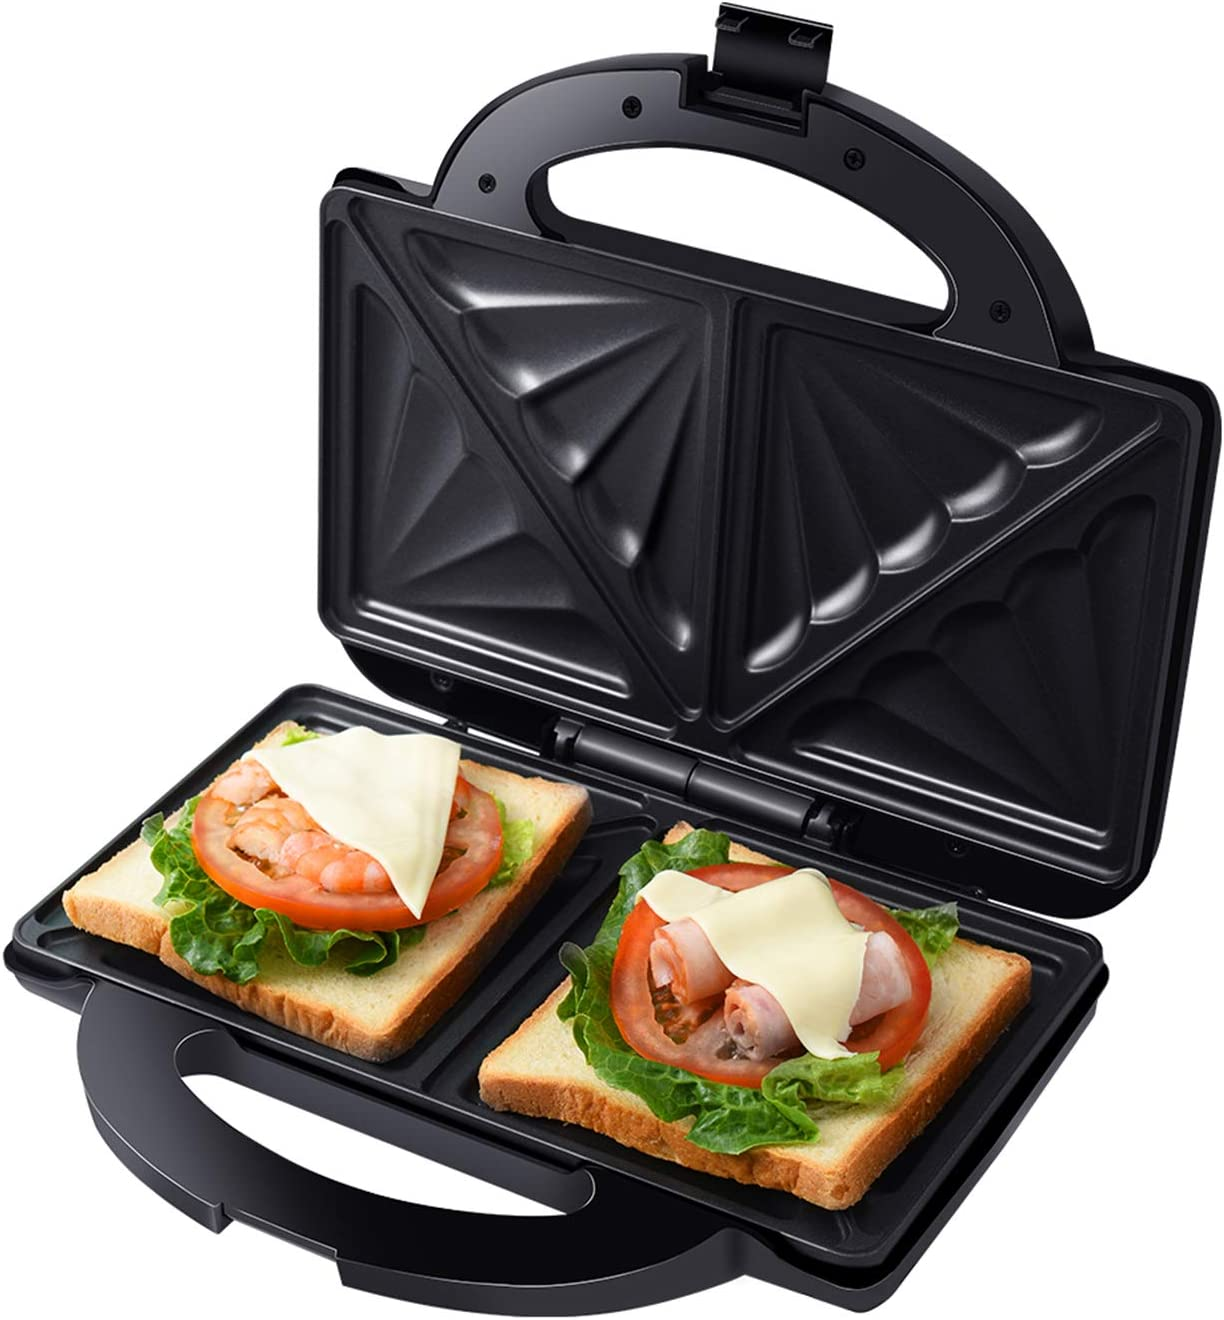 Auertech Sandwich Maker, Toaster and Electric Panini Maker Omelette Grilled Cheese Machine with Extra-Large Non-Stick Plates, Indicator Lights, Cool Touch Handle (Double Sandwich)